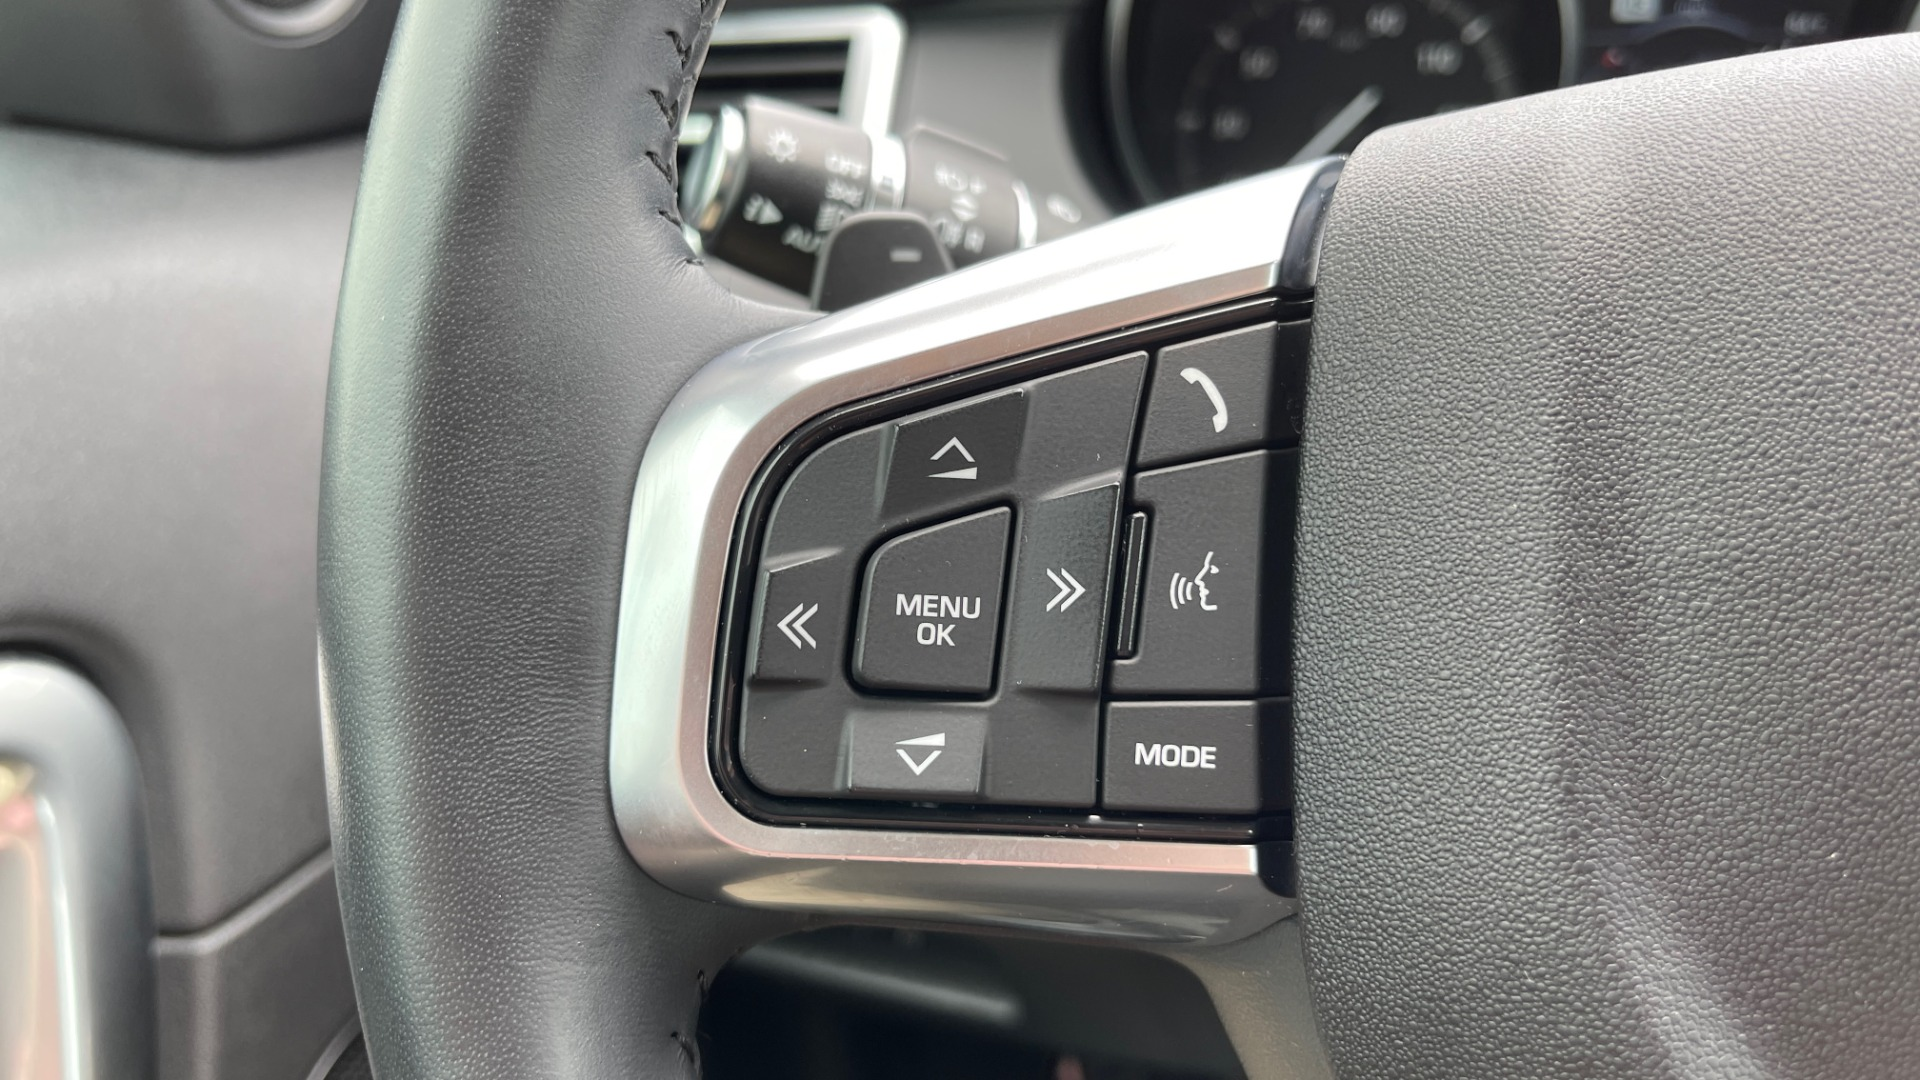 Used 2018 Land Rover DISCOVERY SPORT HSE 4WD / NAV / PANO-ROOF / MERIDIAN SND / HTD STS / LANE ASST / REARVIEW for sale $34,995 at Formula Imports in Charlotte NC 28227 39